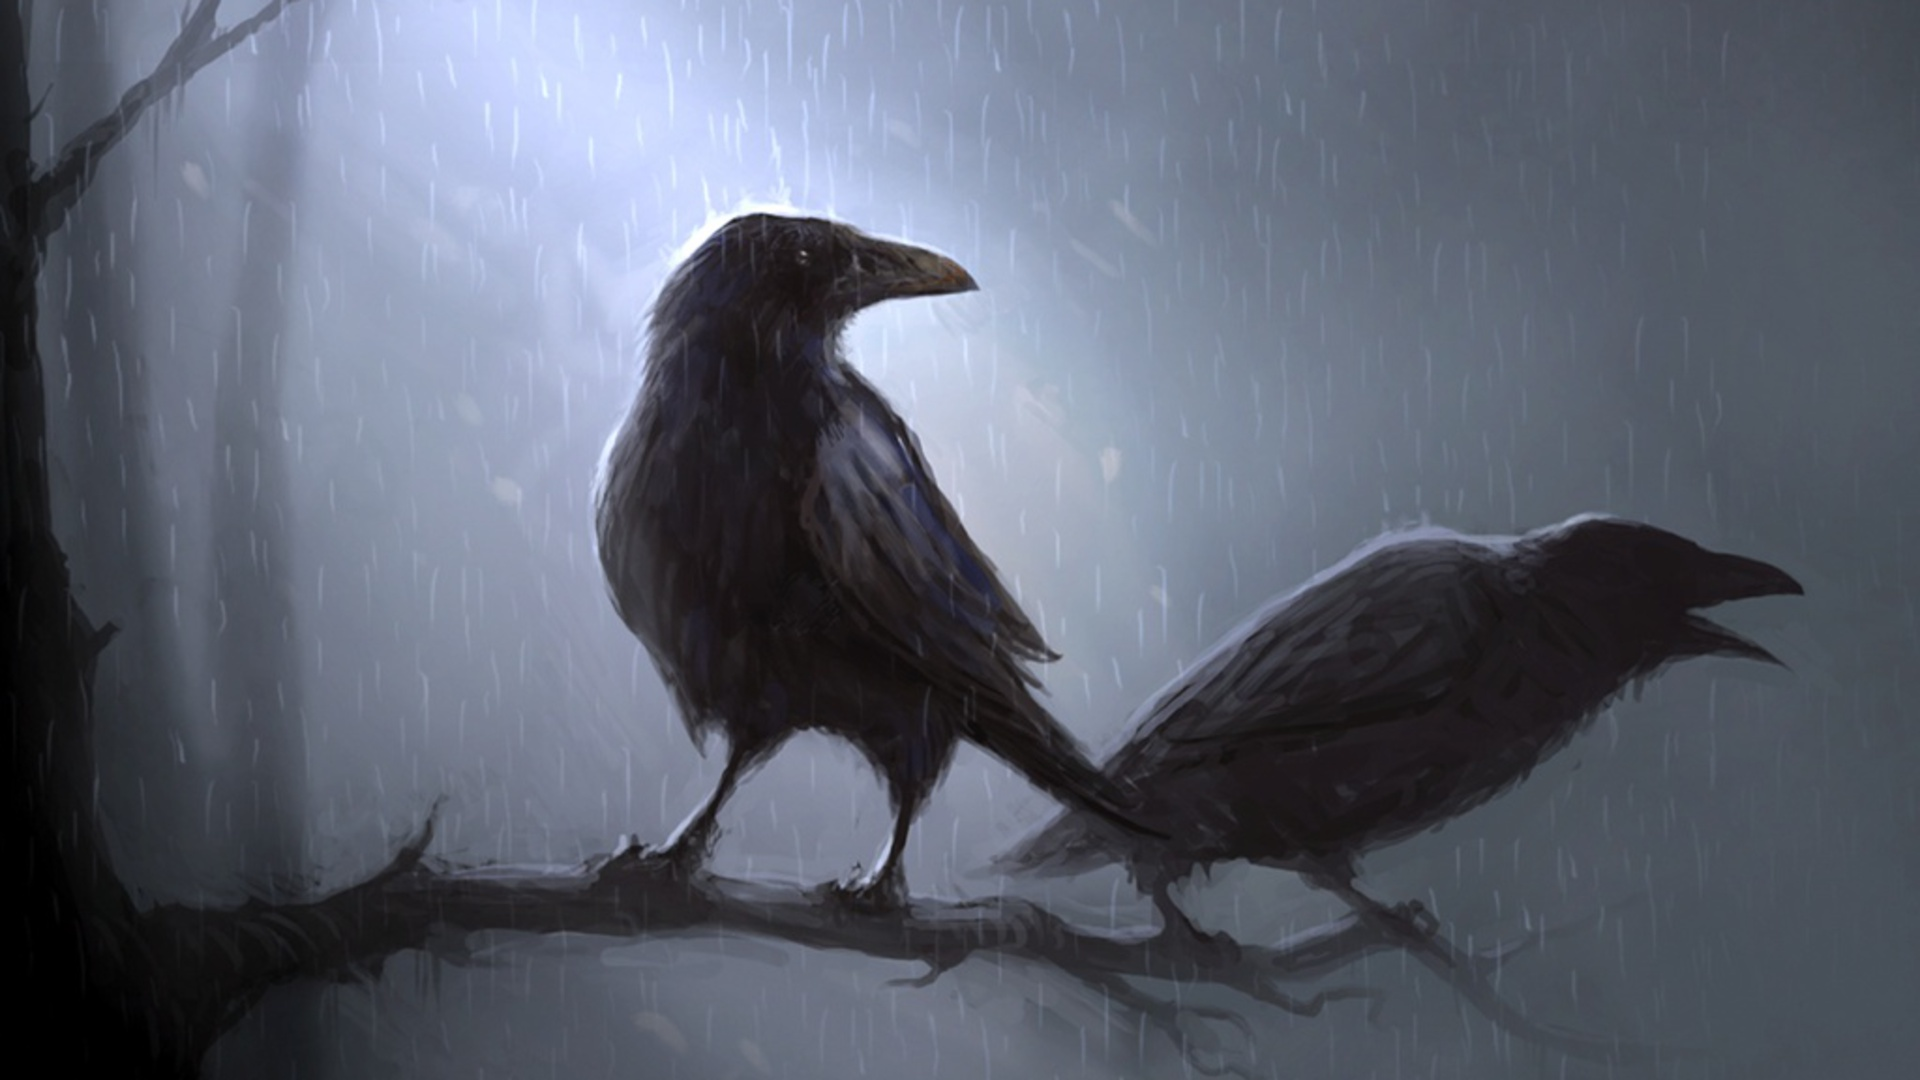 60 Crow HD Wallpapers | Backgrounds - Wallpaper Abyss